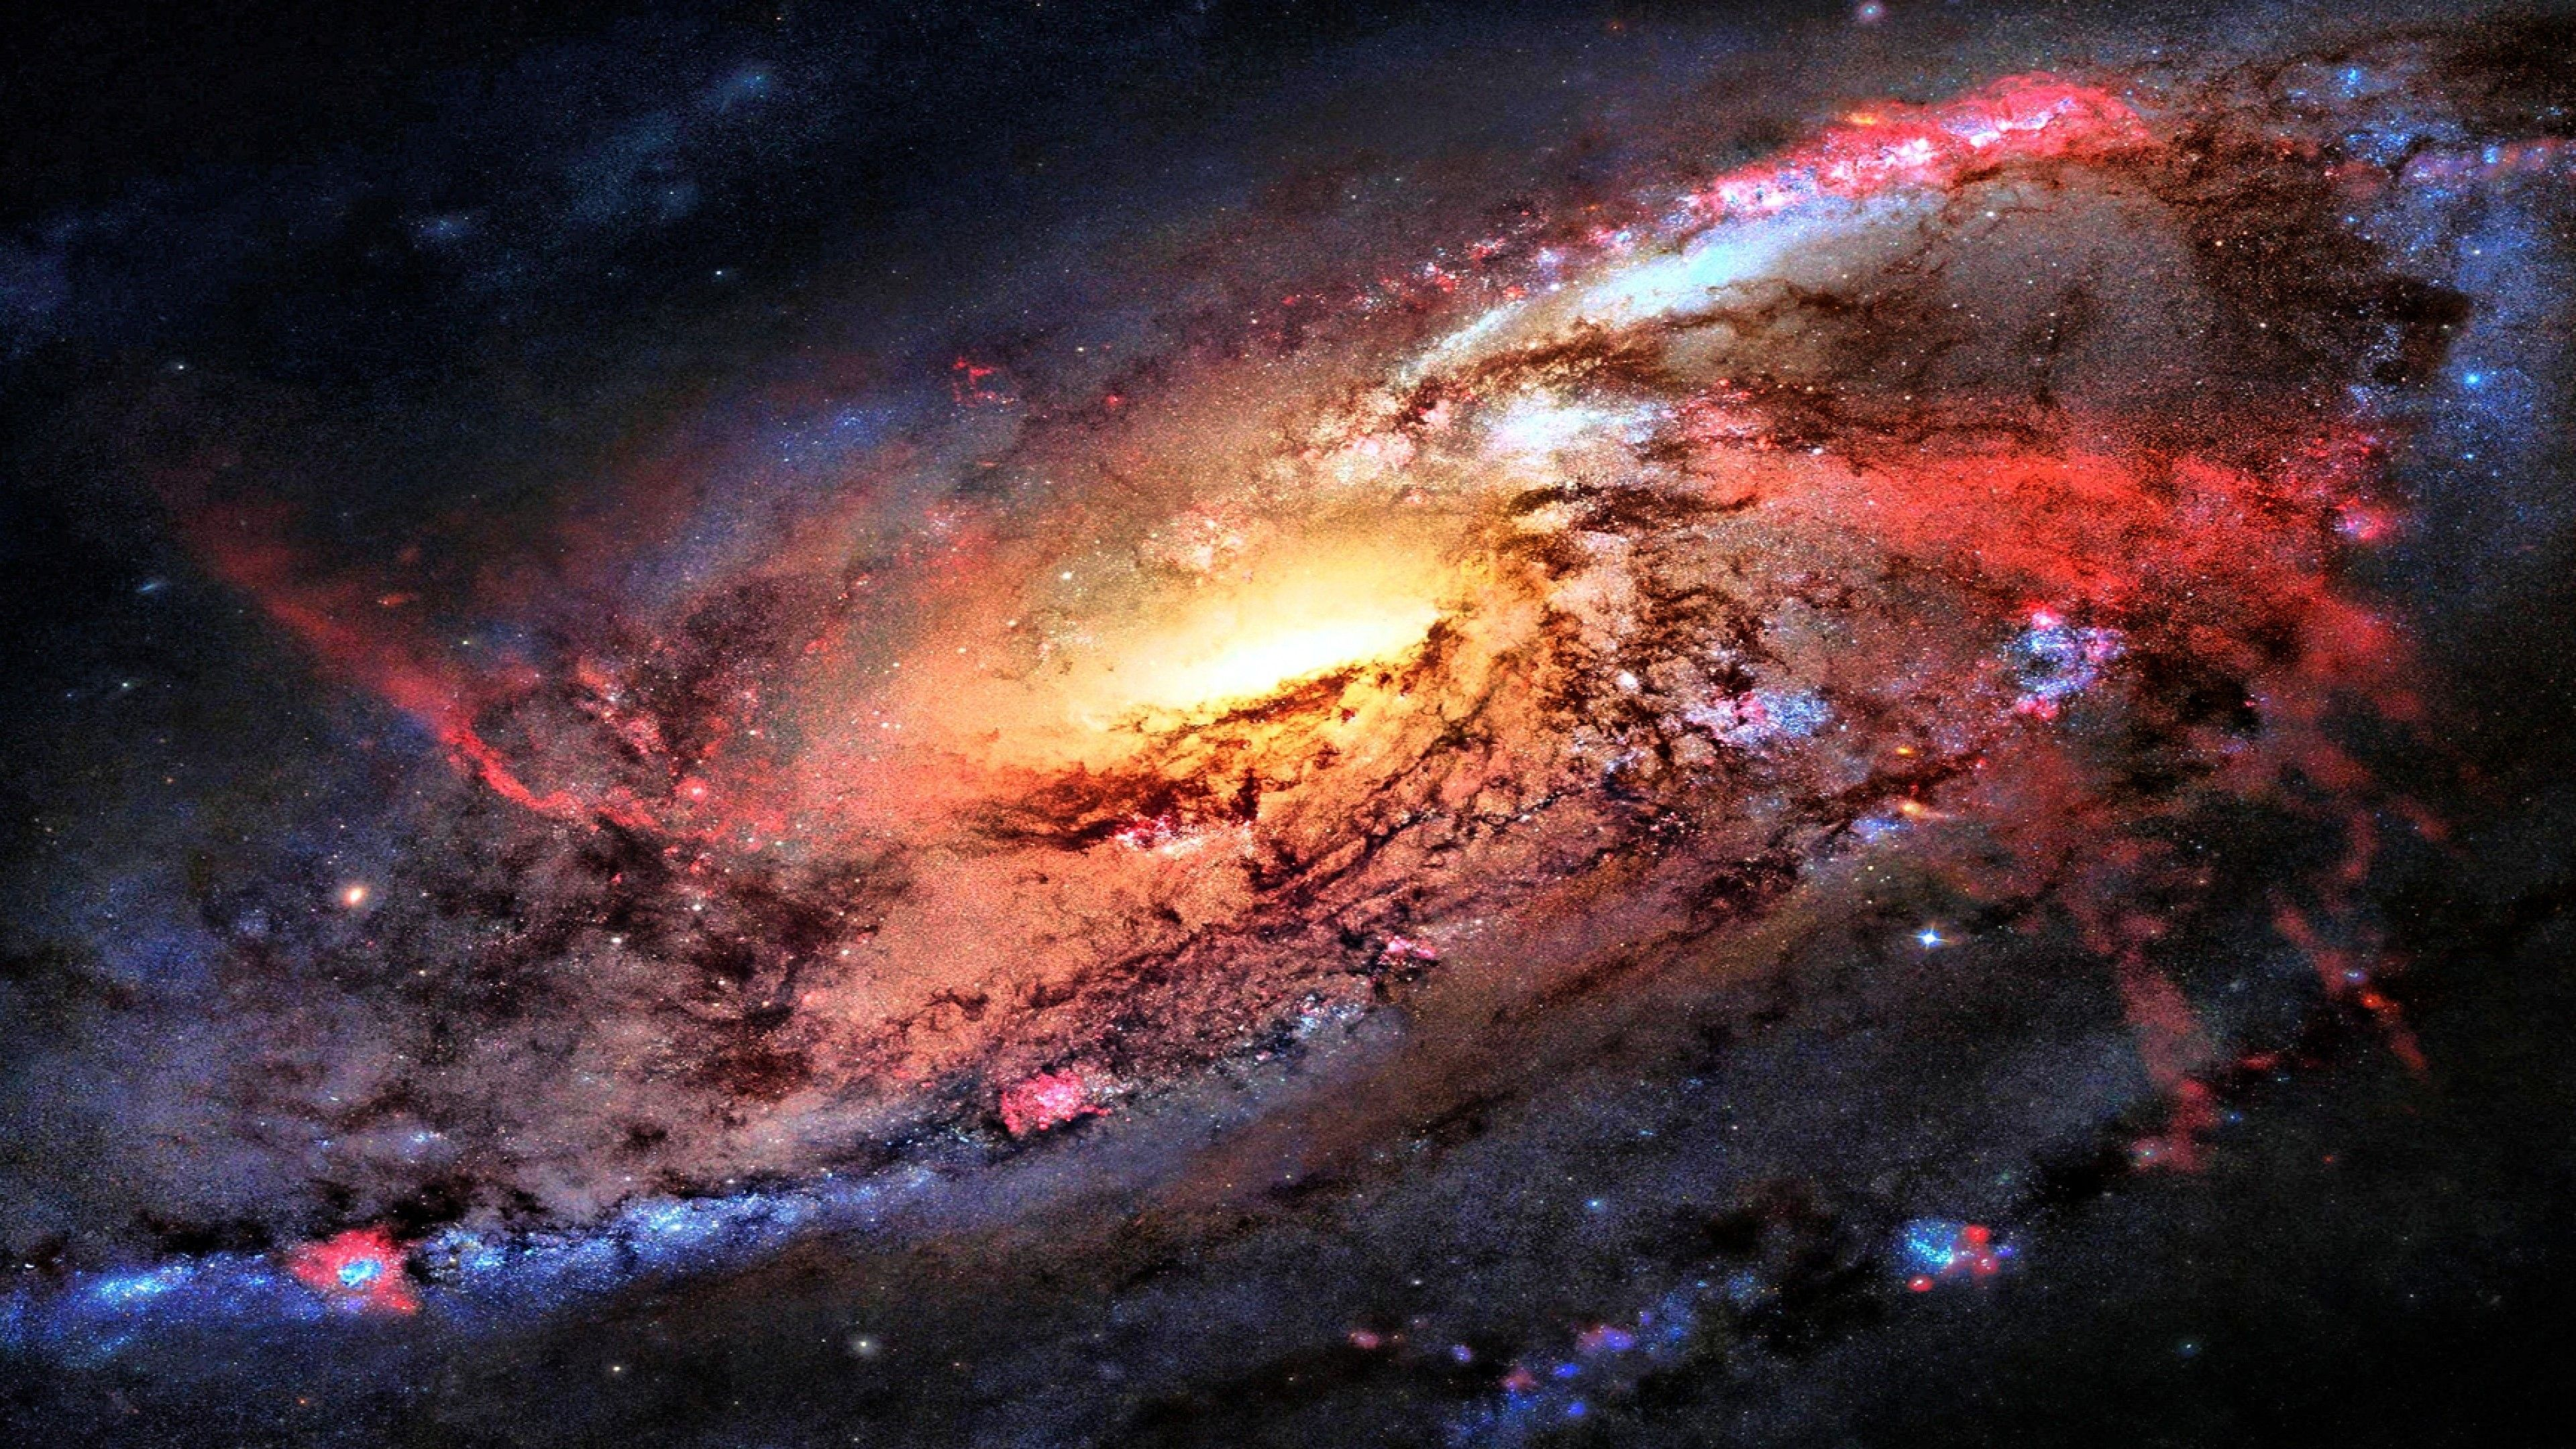 4k Galaxy Space Space Wallpapers Hd Wallpapers Galaxy Wallpapers Digital Universe Wallpapers 4k Wallpapers Hd Space Wallpaper Space Background Hd Wallpaper